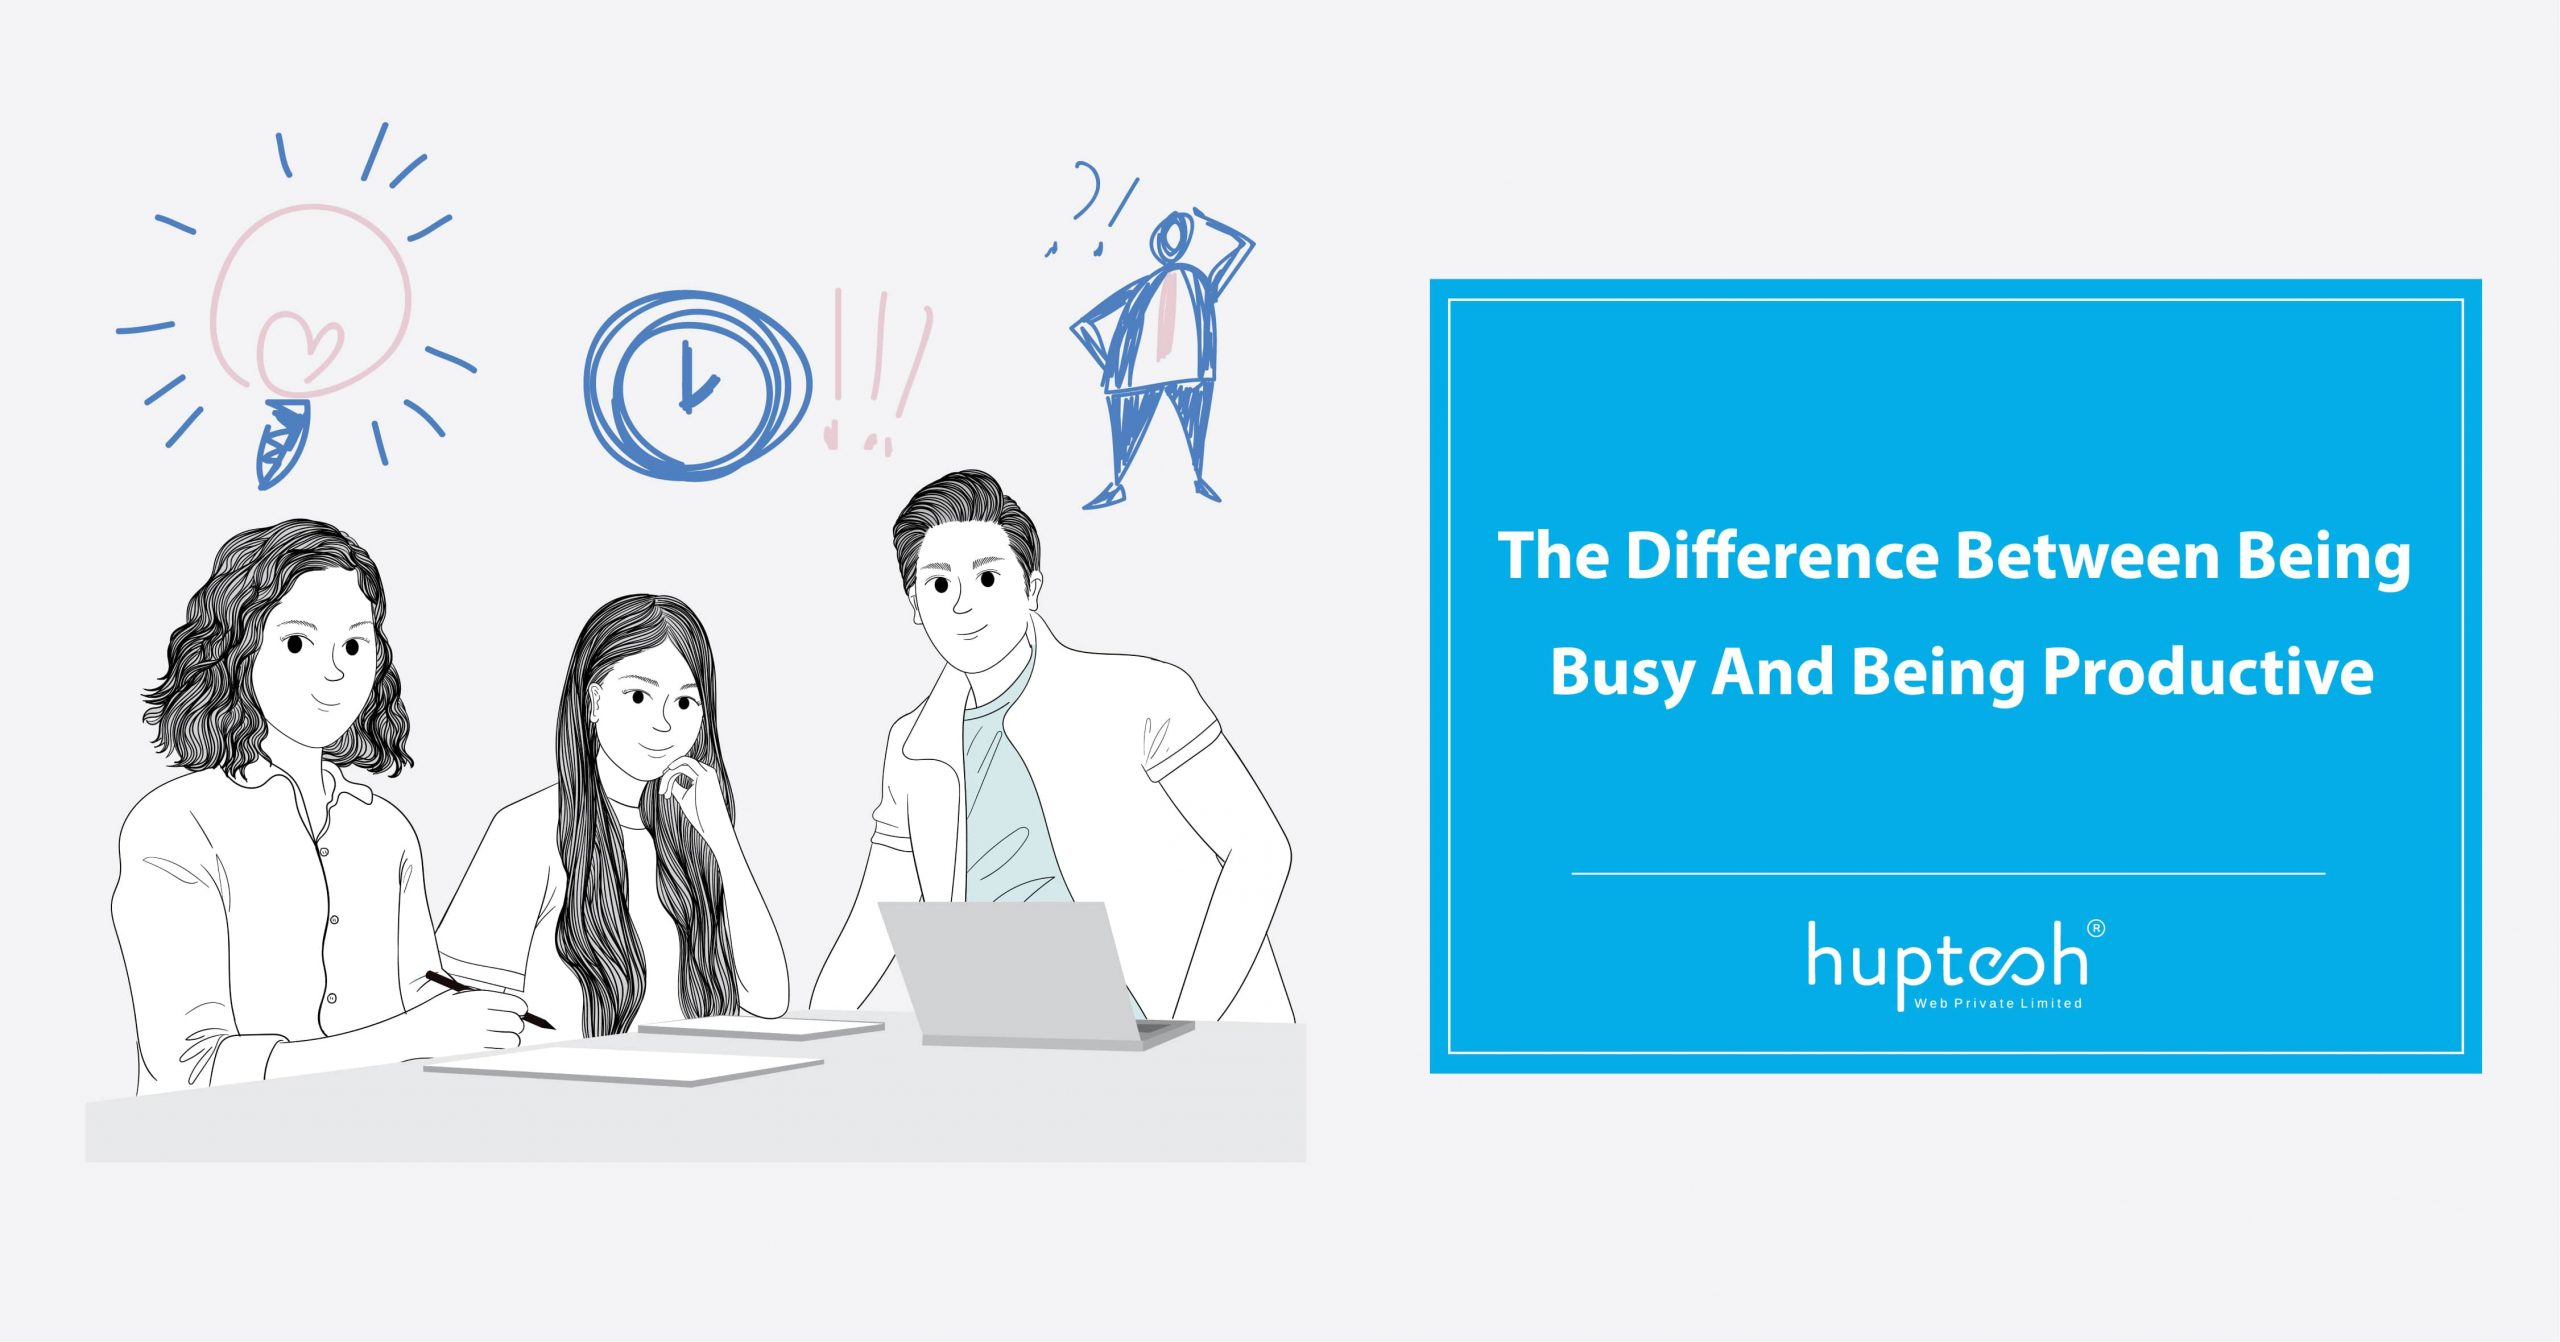 Difference Between Being Busy And Being Productive